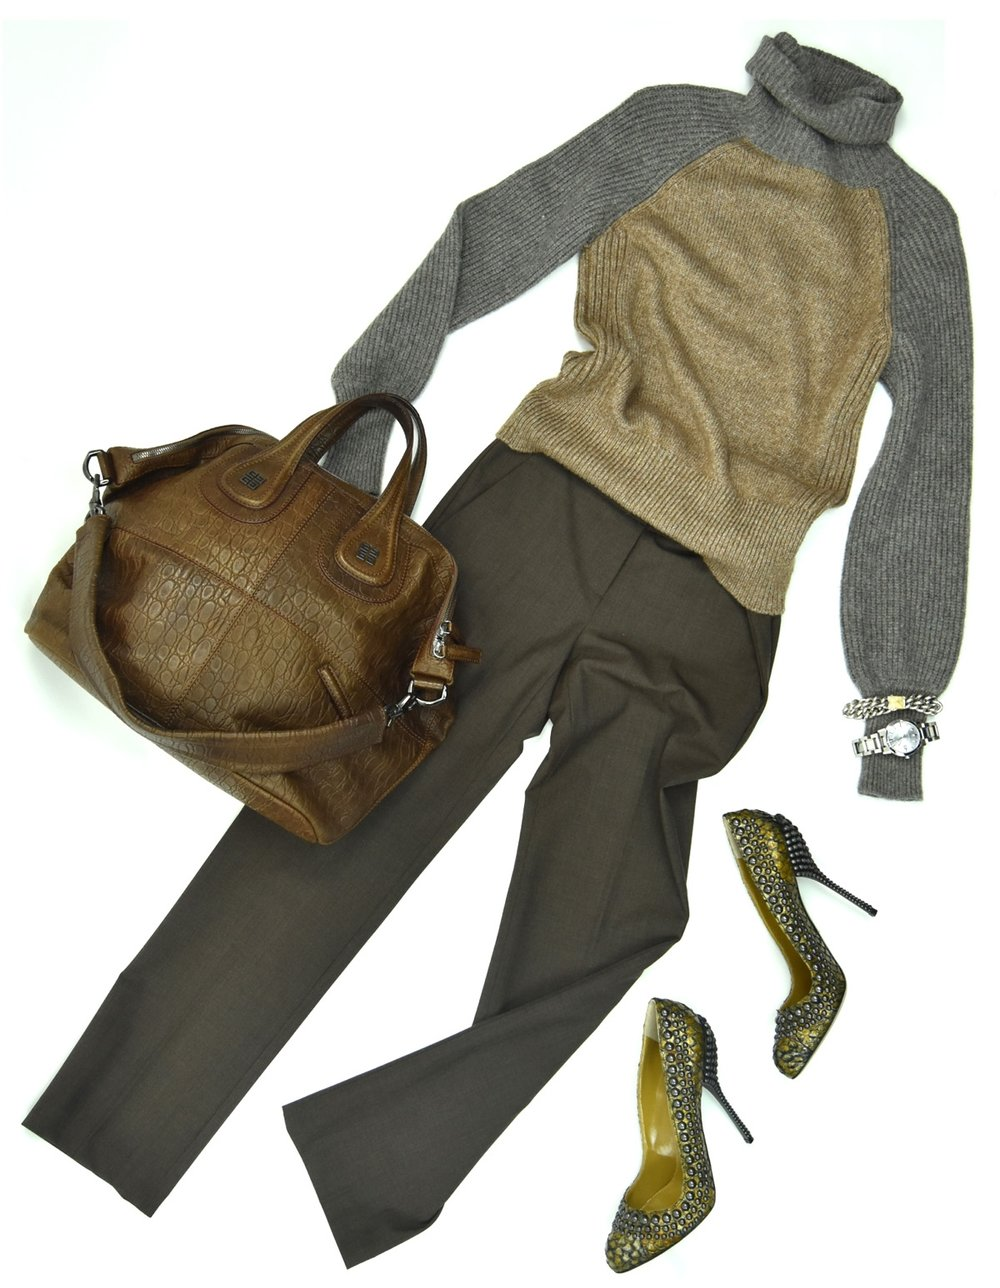 Tory Burch sweater, Theory slacks, Sergio Rossi heels, Givenchy handbag, Konstantino bracelet, Burberry watch